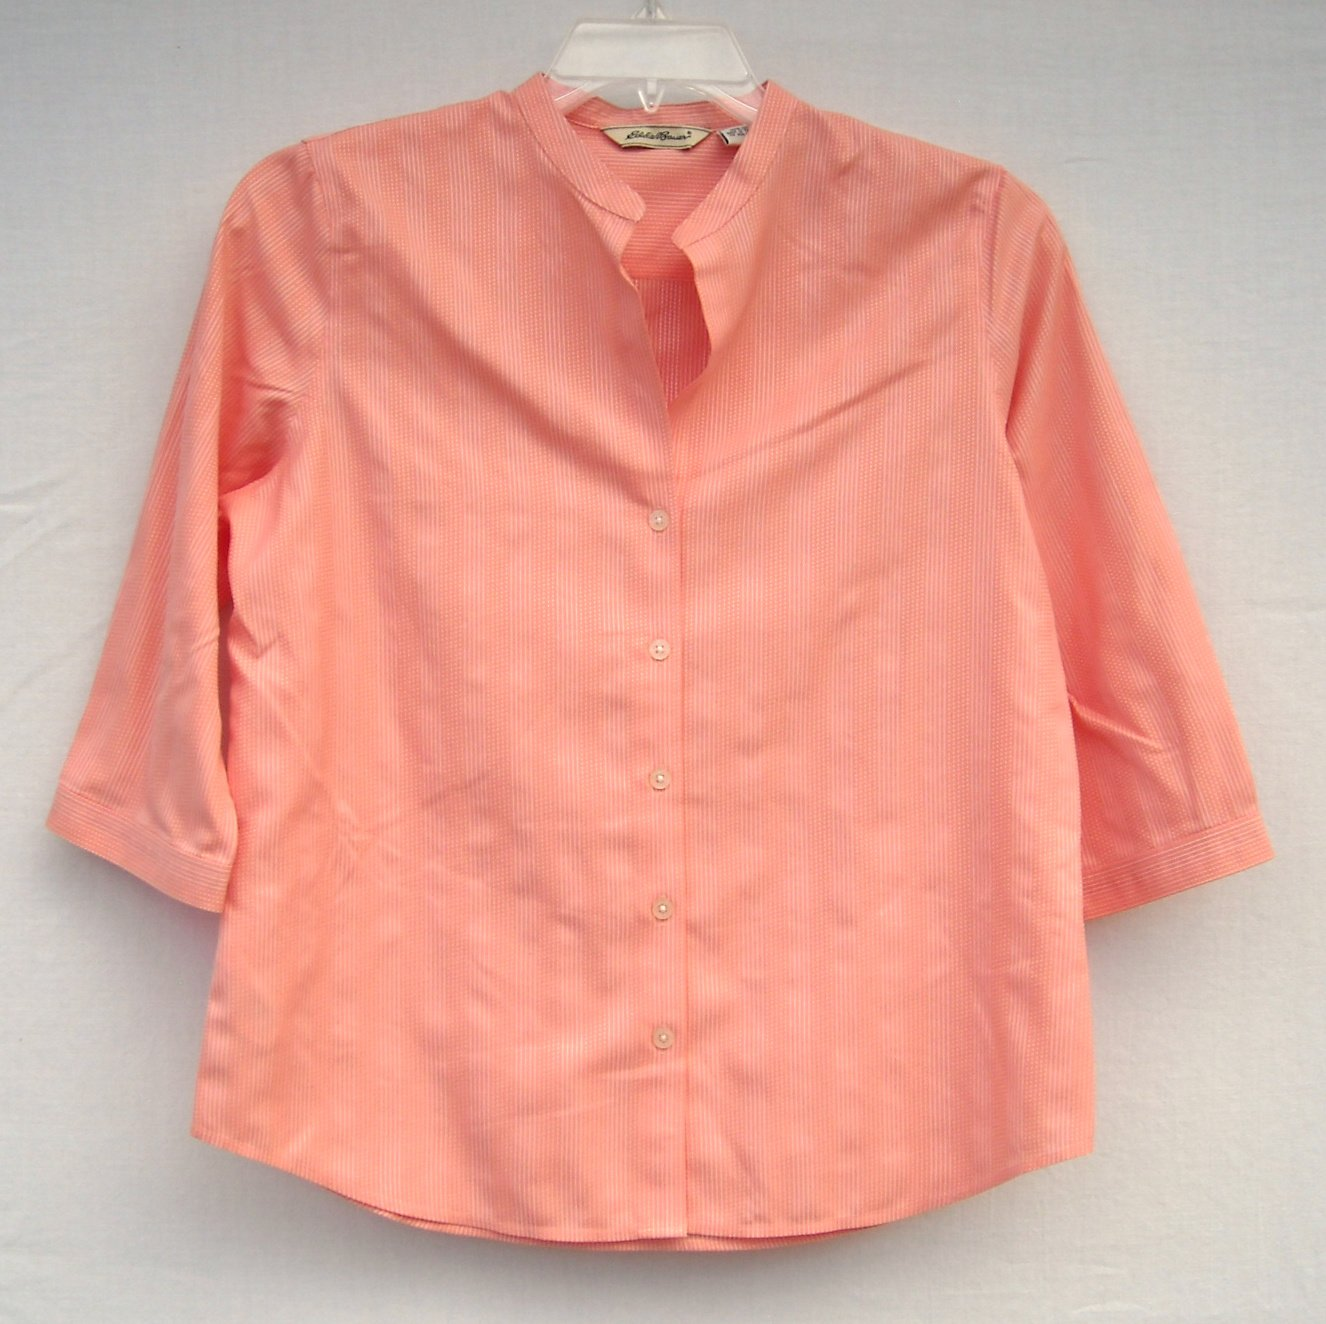 Eddie Bauer Misses Striped Cotton Blouse Shirt Size M